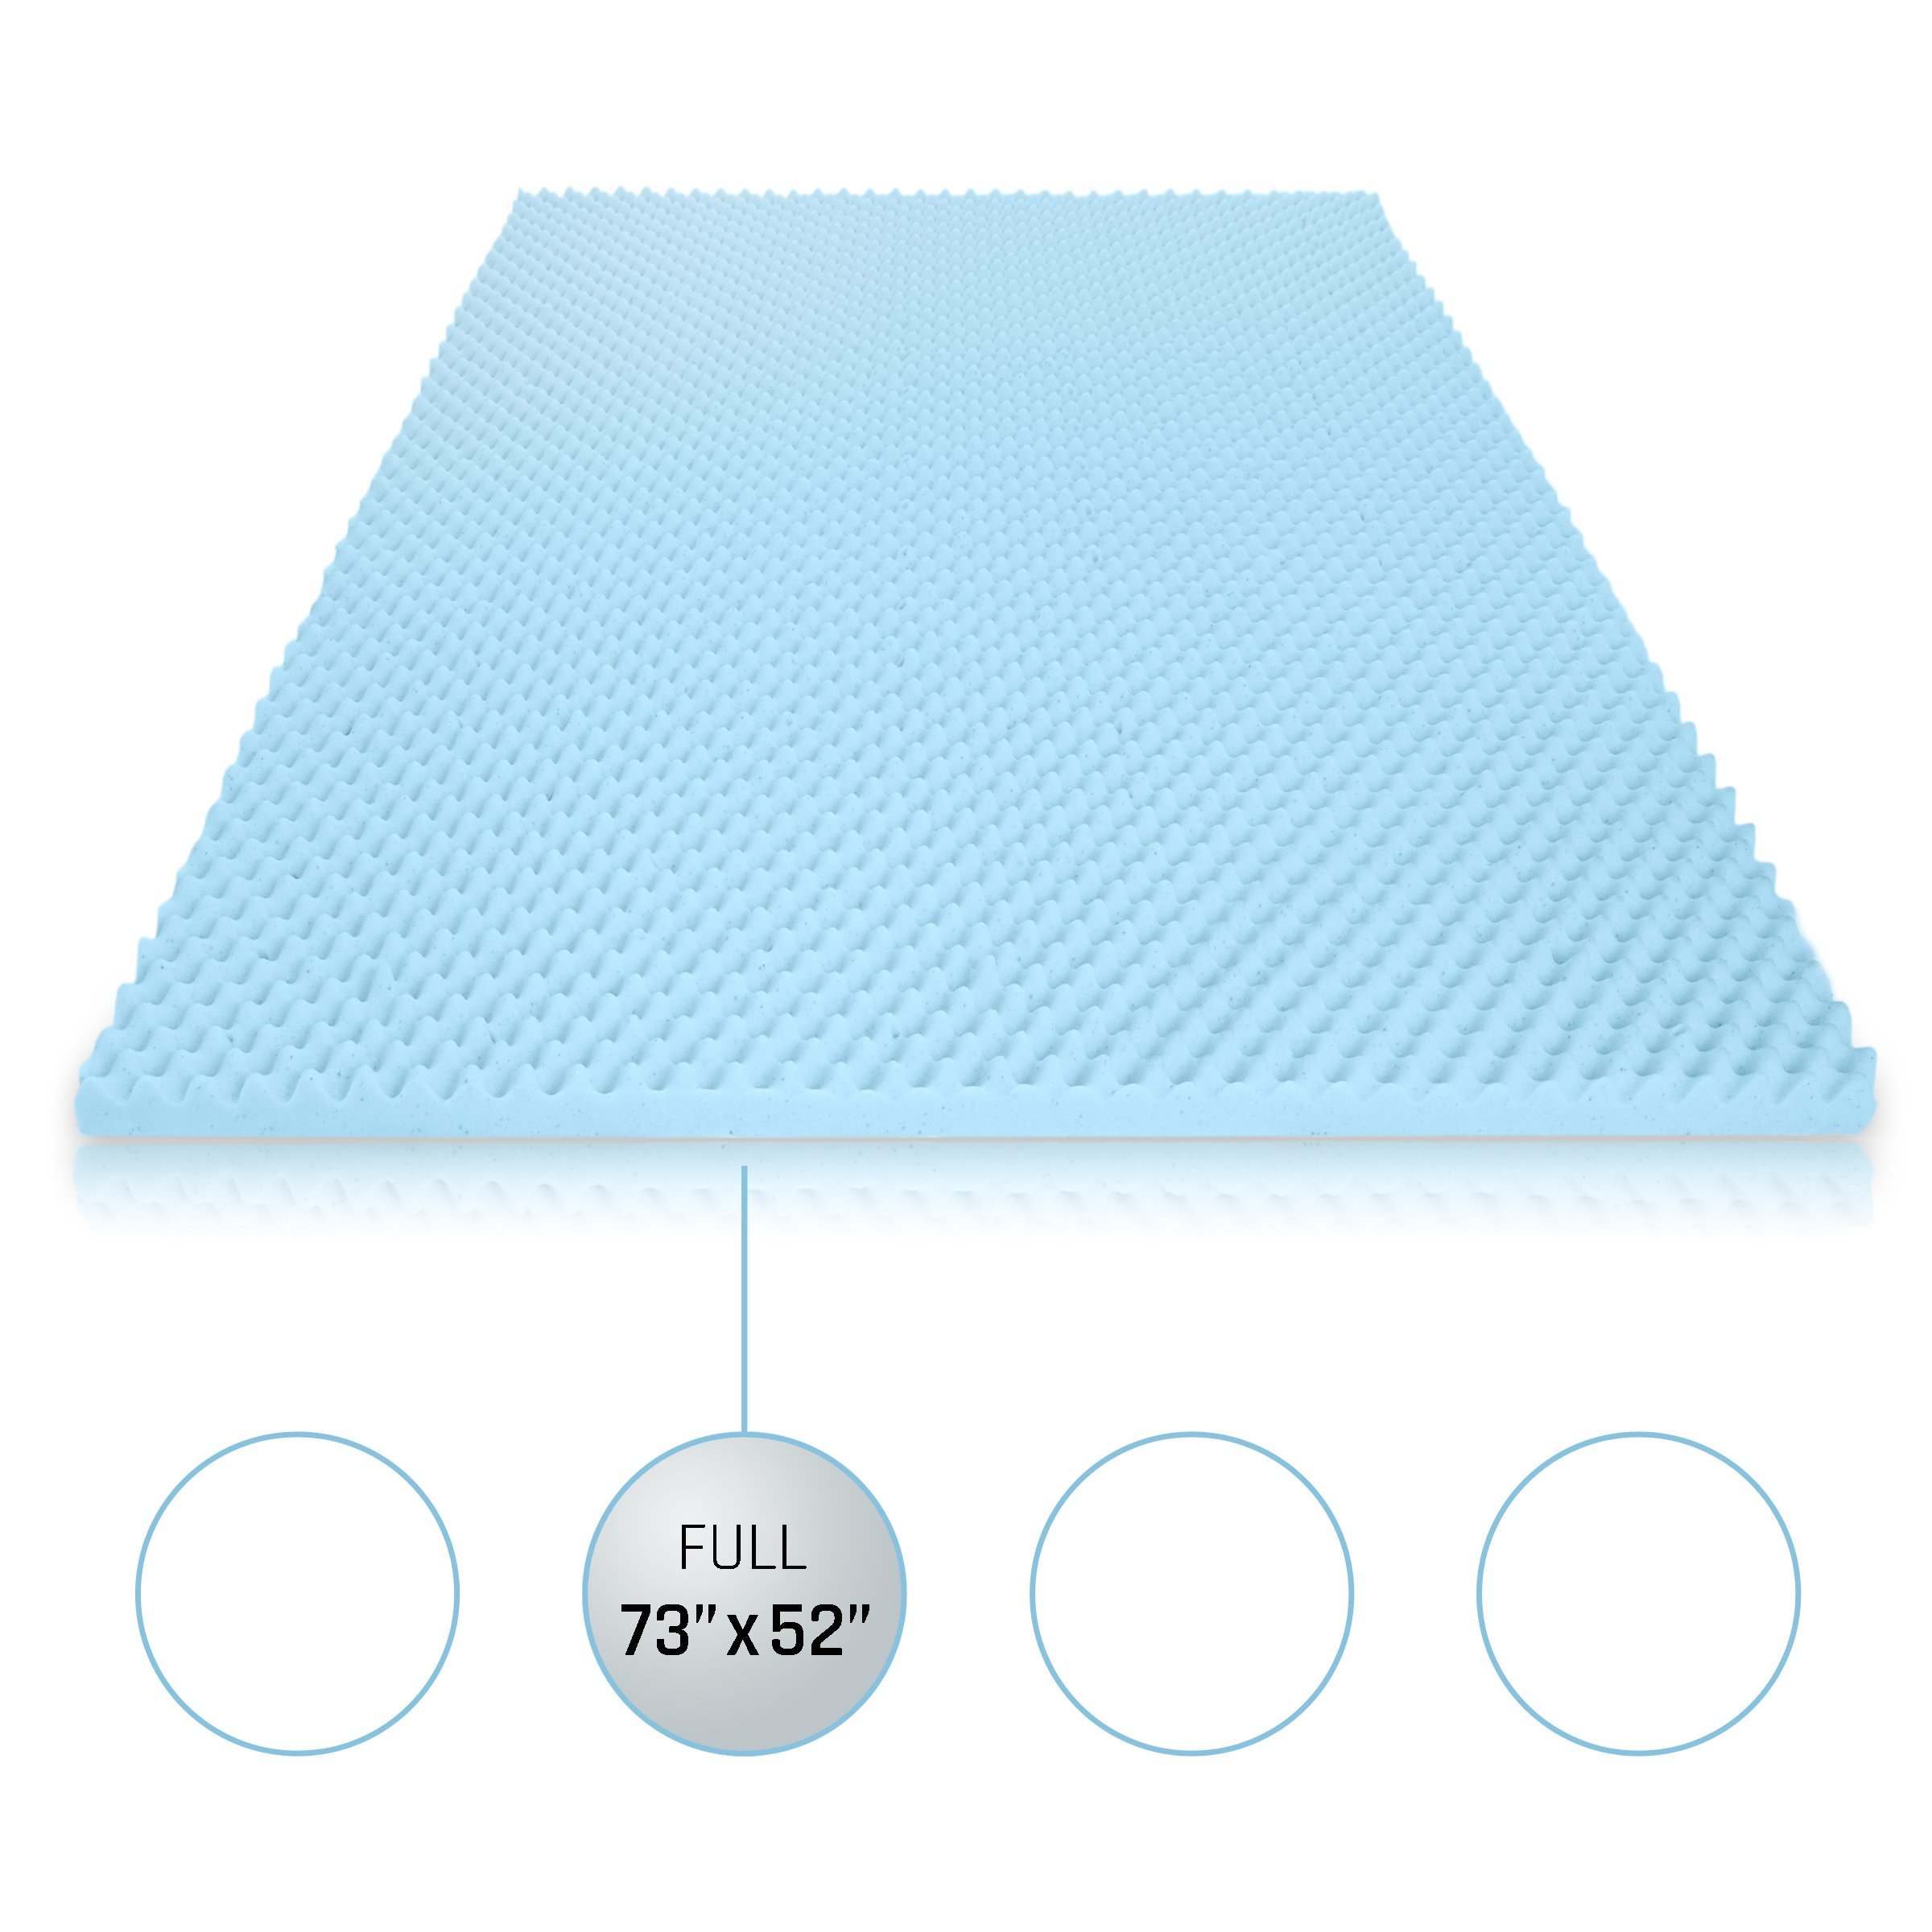 Milliard 2in. Egg Crate Gel Memory Foam Mattress Topper - Full, Mattress Pad Provides Great Pressure Relief, Gel Infusion Contributes to a Cooler Night Sleep (Full)